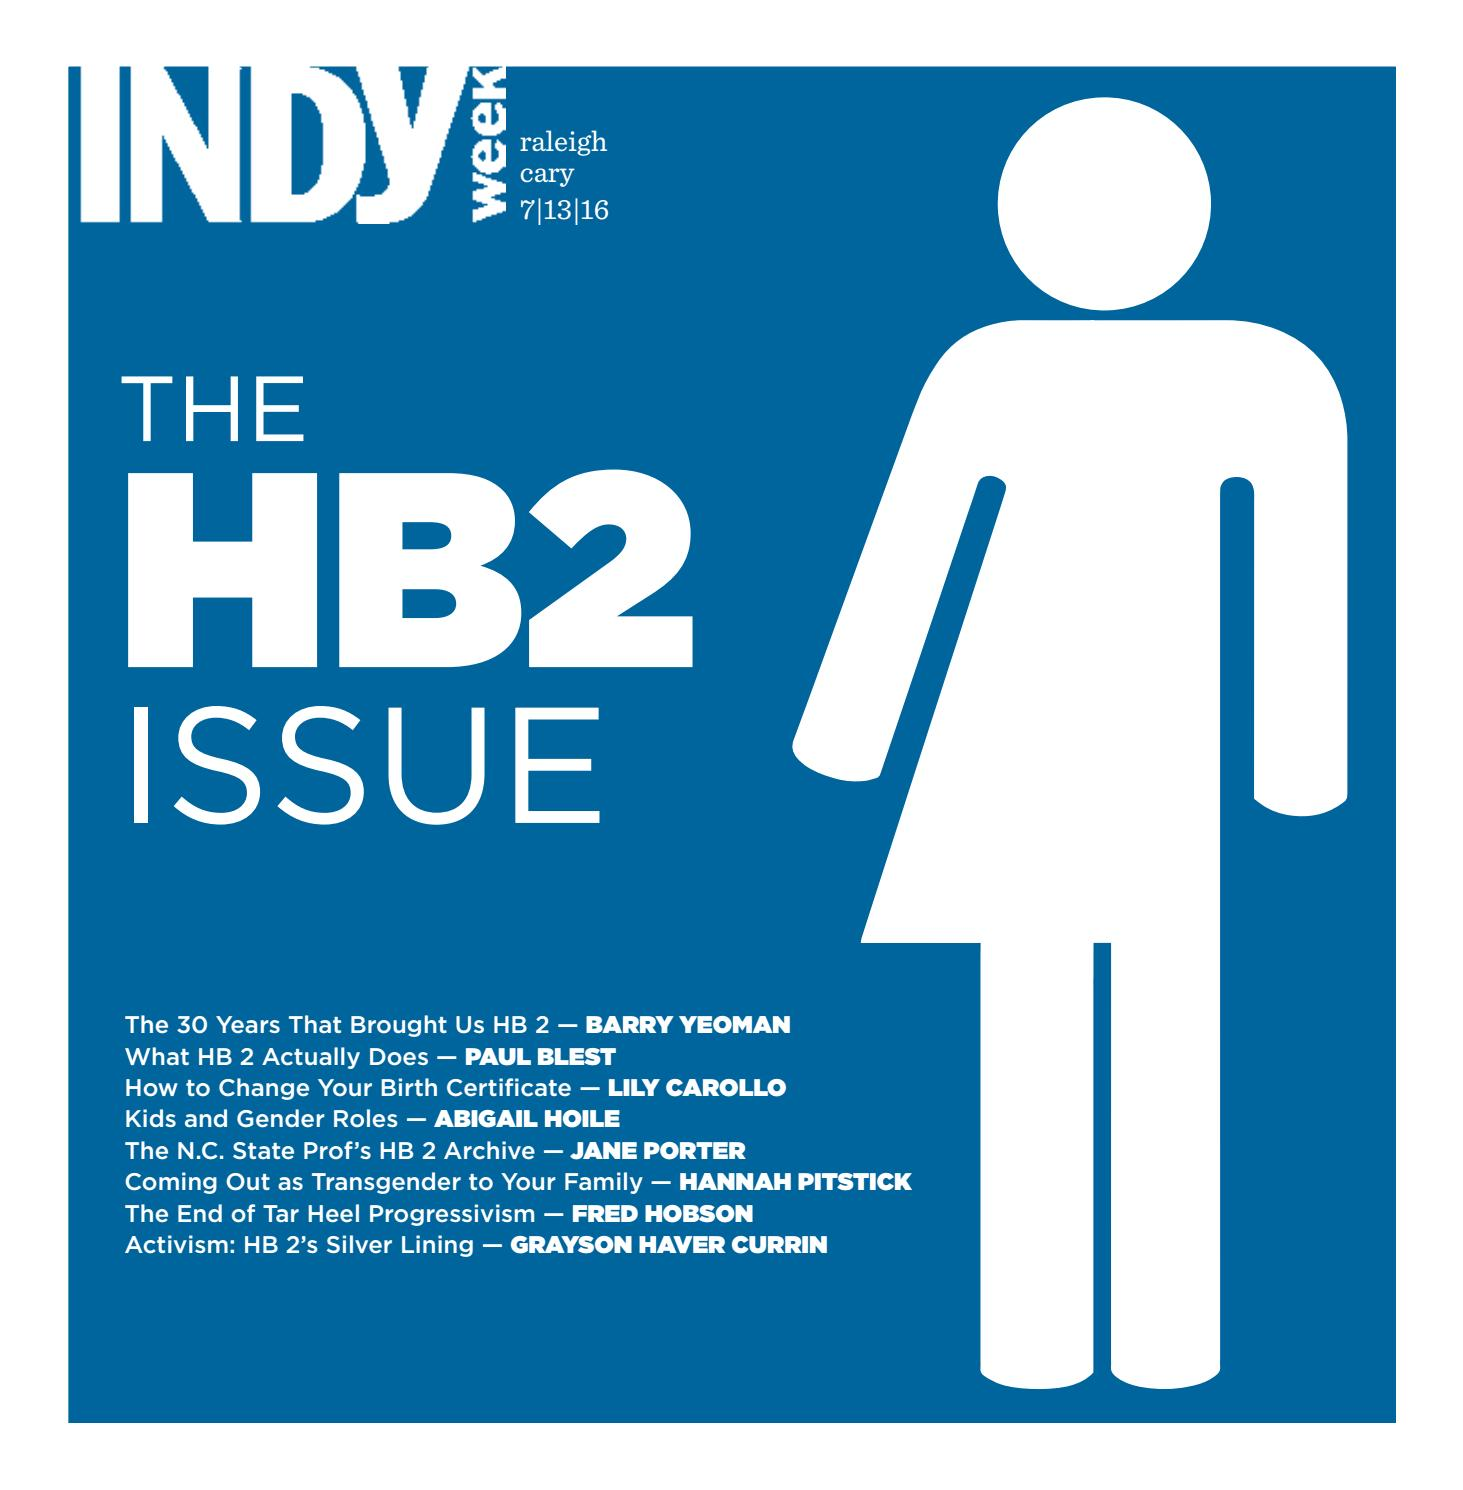 71d55a143 INDY Week 7.13.16 by Indy Week - issuu